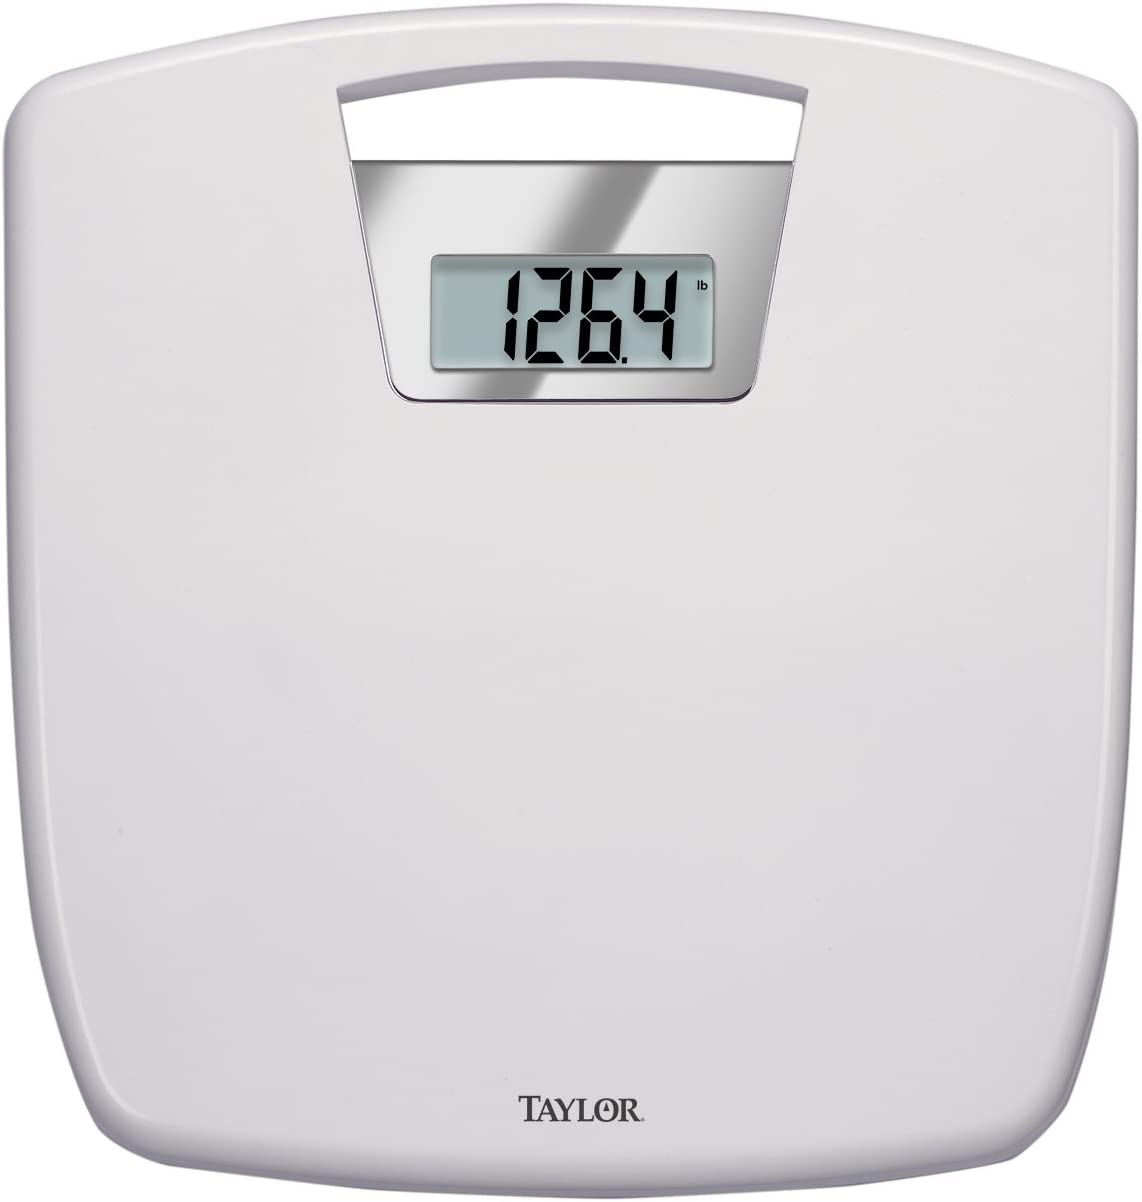 Taylor Digital Bathroom Scale with Antimicrobial Platform